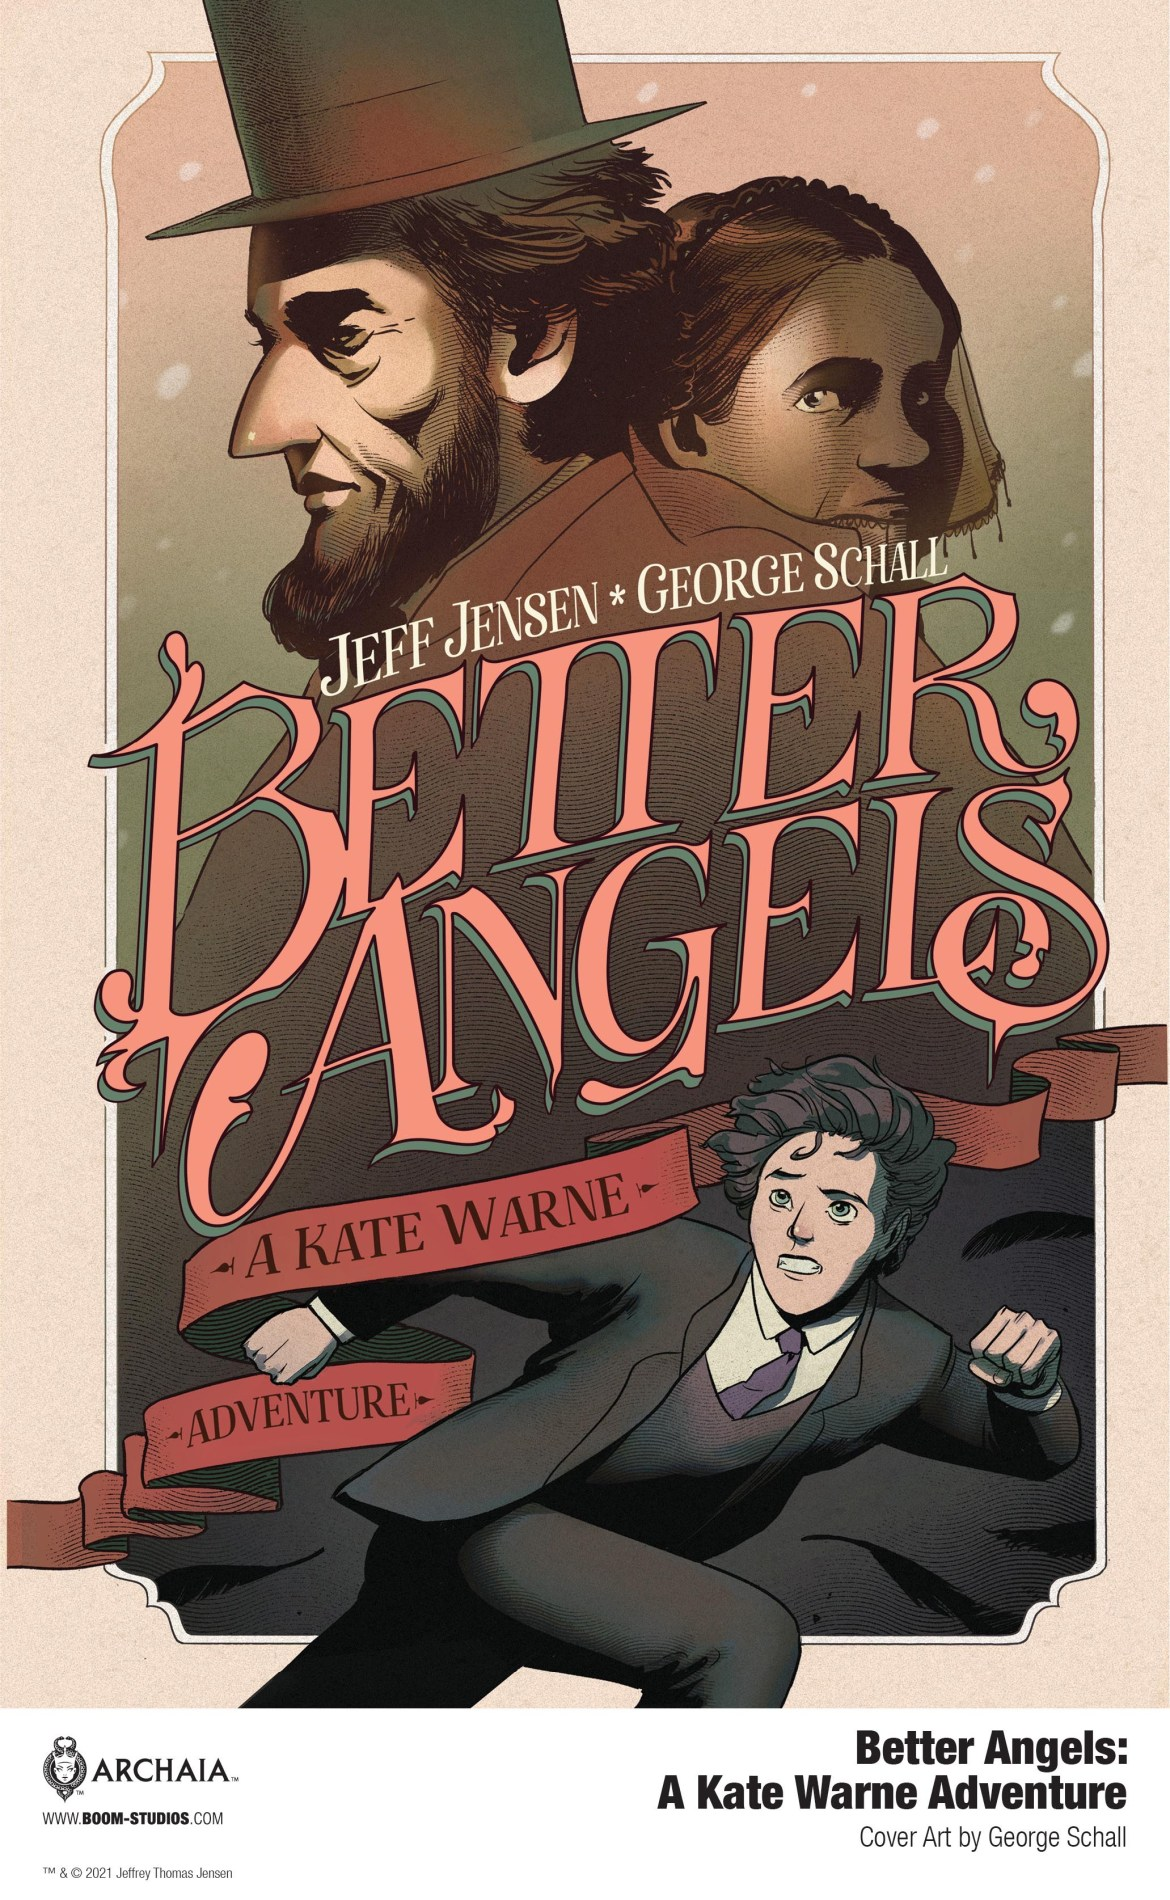 7ae816ce-5635-4364-9c70-fbe14085bde4 First Look at BOOM! Studios' BETTER ANGELS: A KATE WARNE ADVENTURE